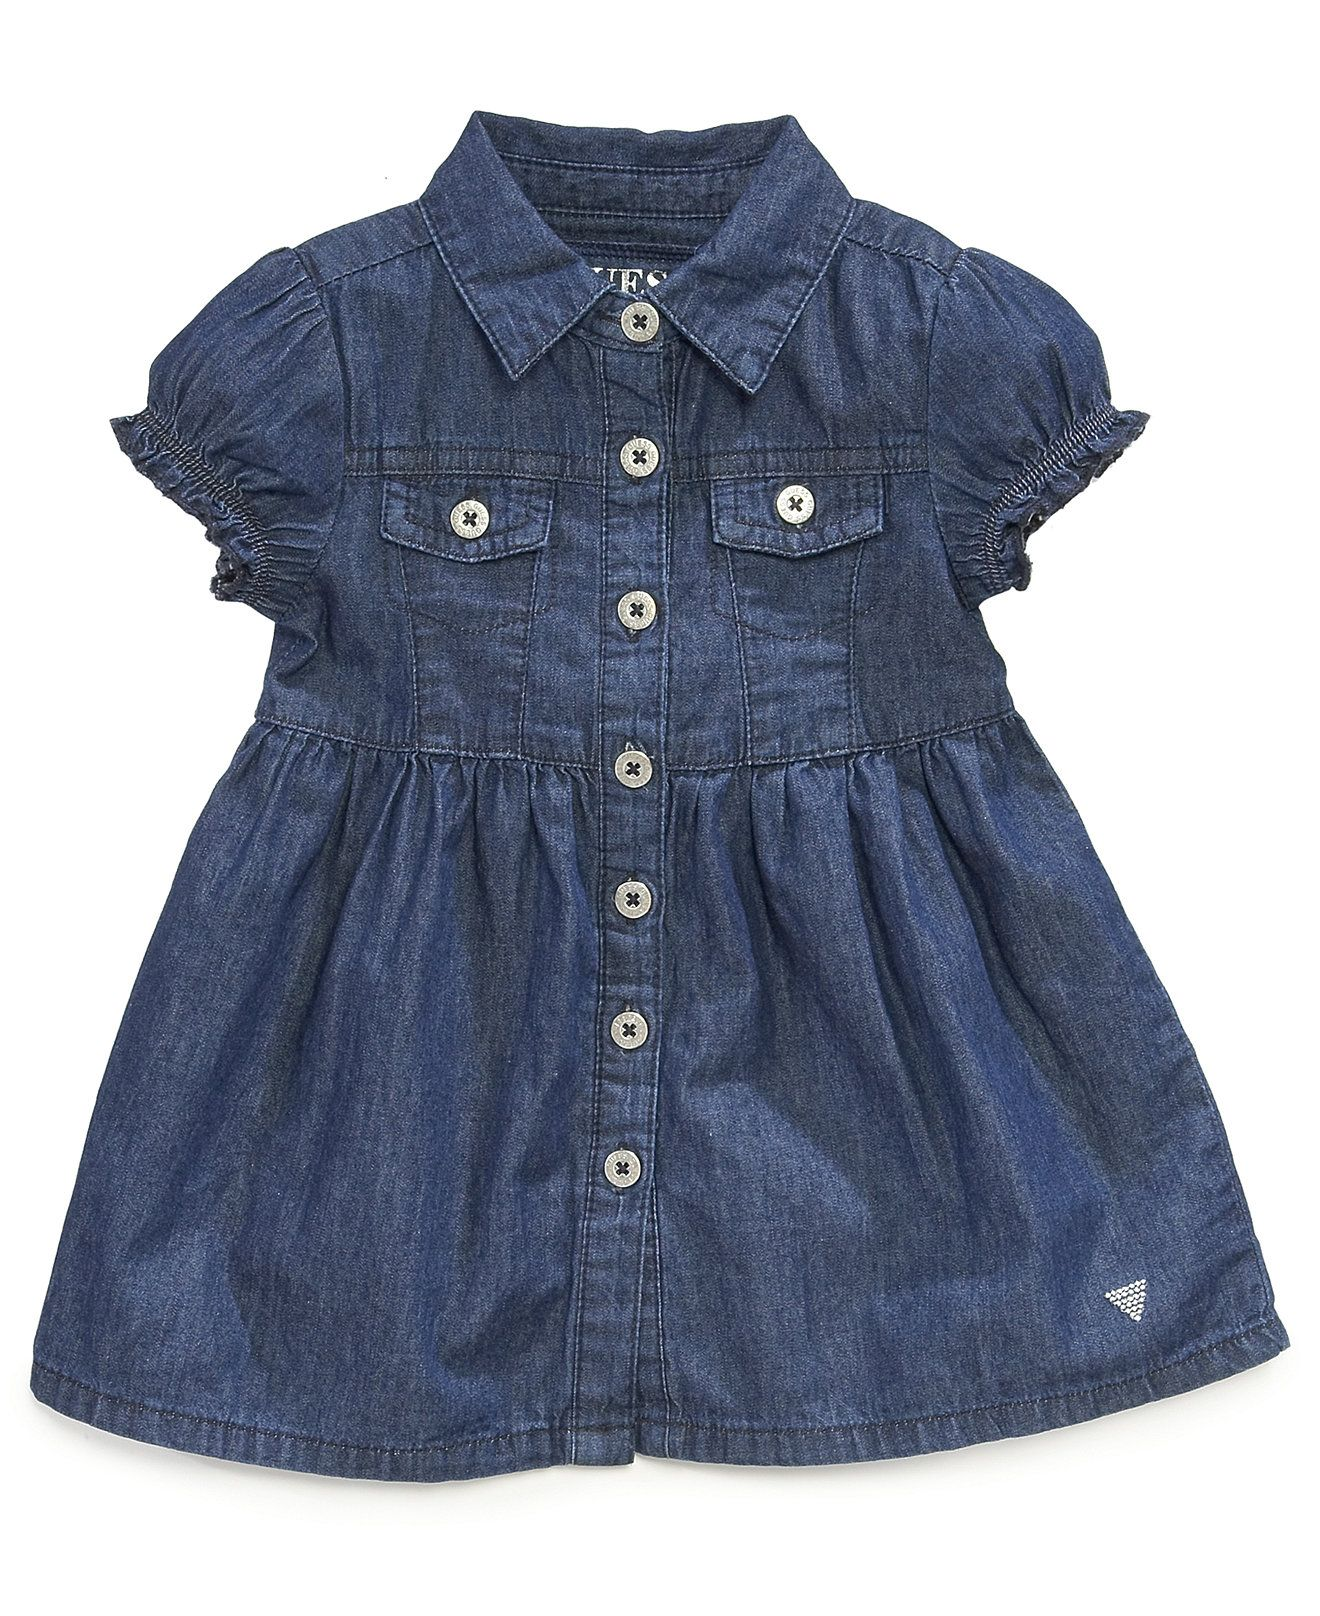 GUESS Baby Girls Denim Dress Kids Baby Girl 0 24 months